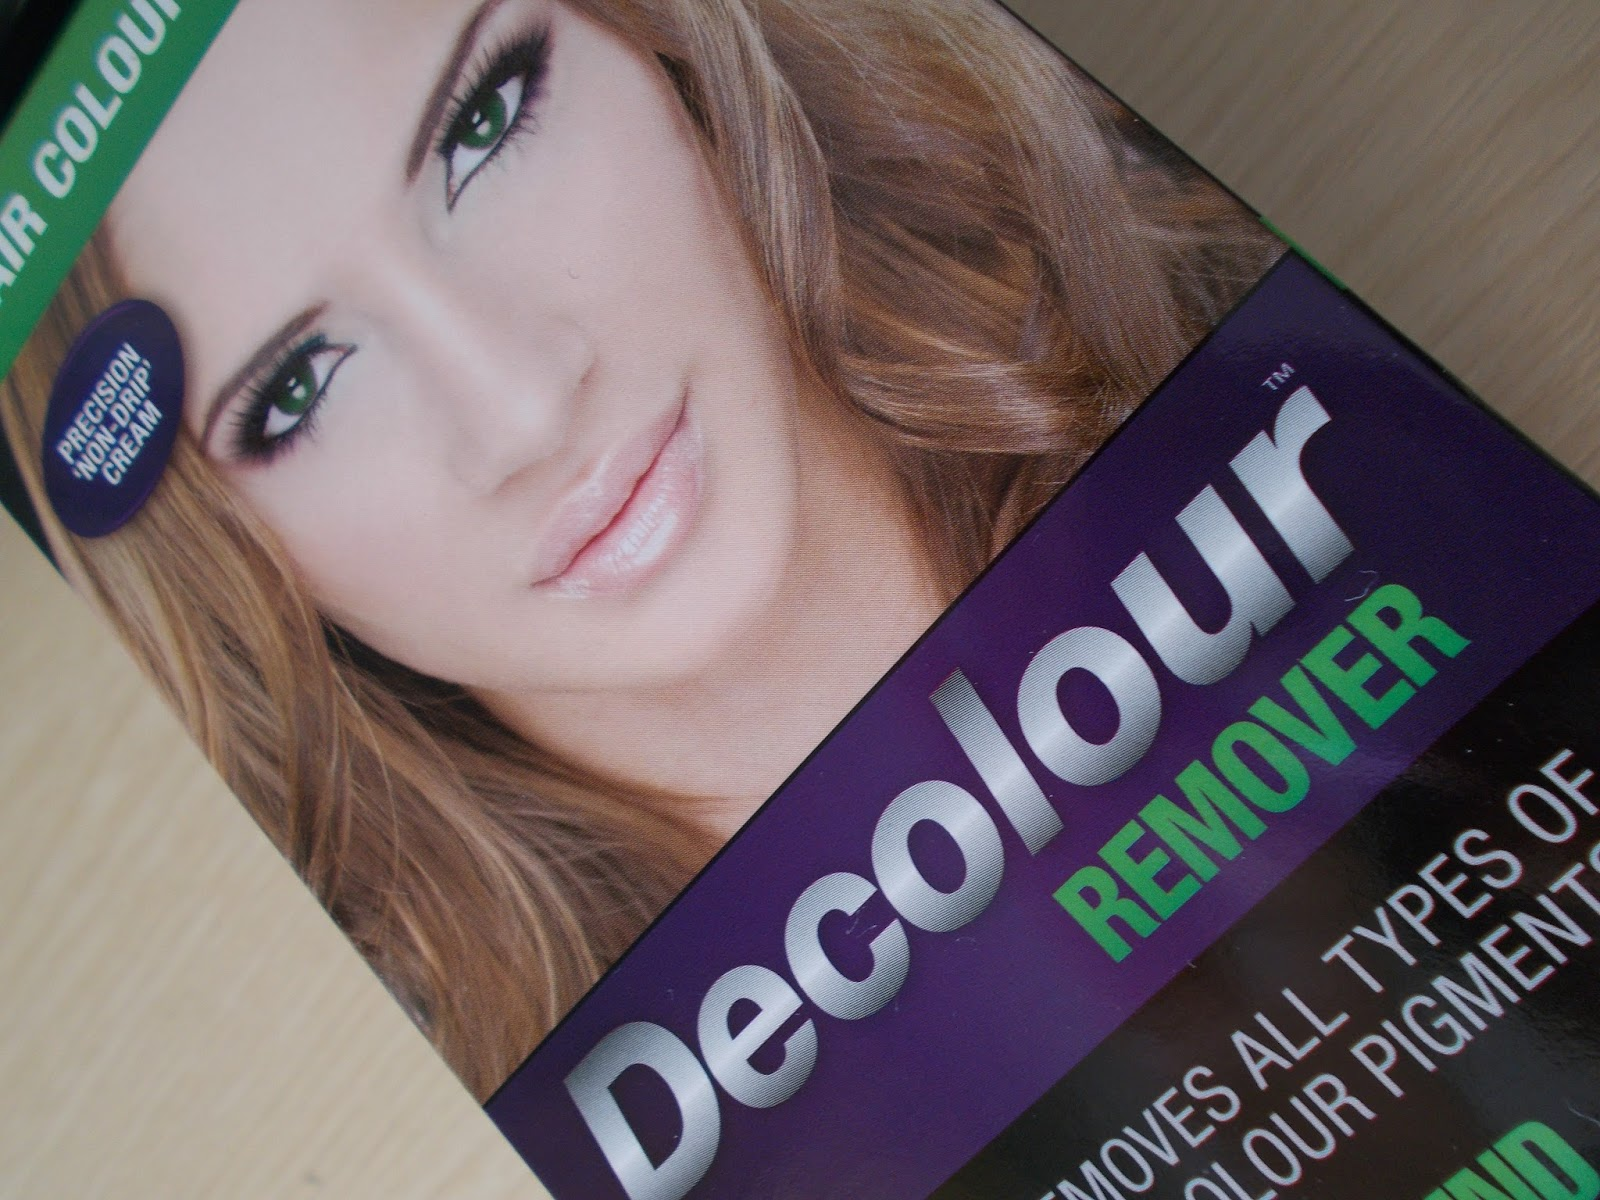 Decolour remover stripping colour no bleach remove dye